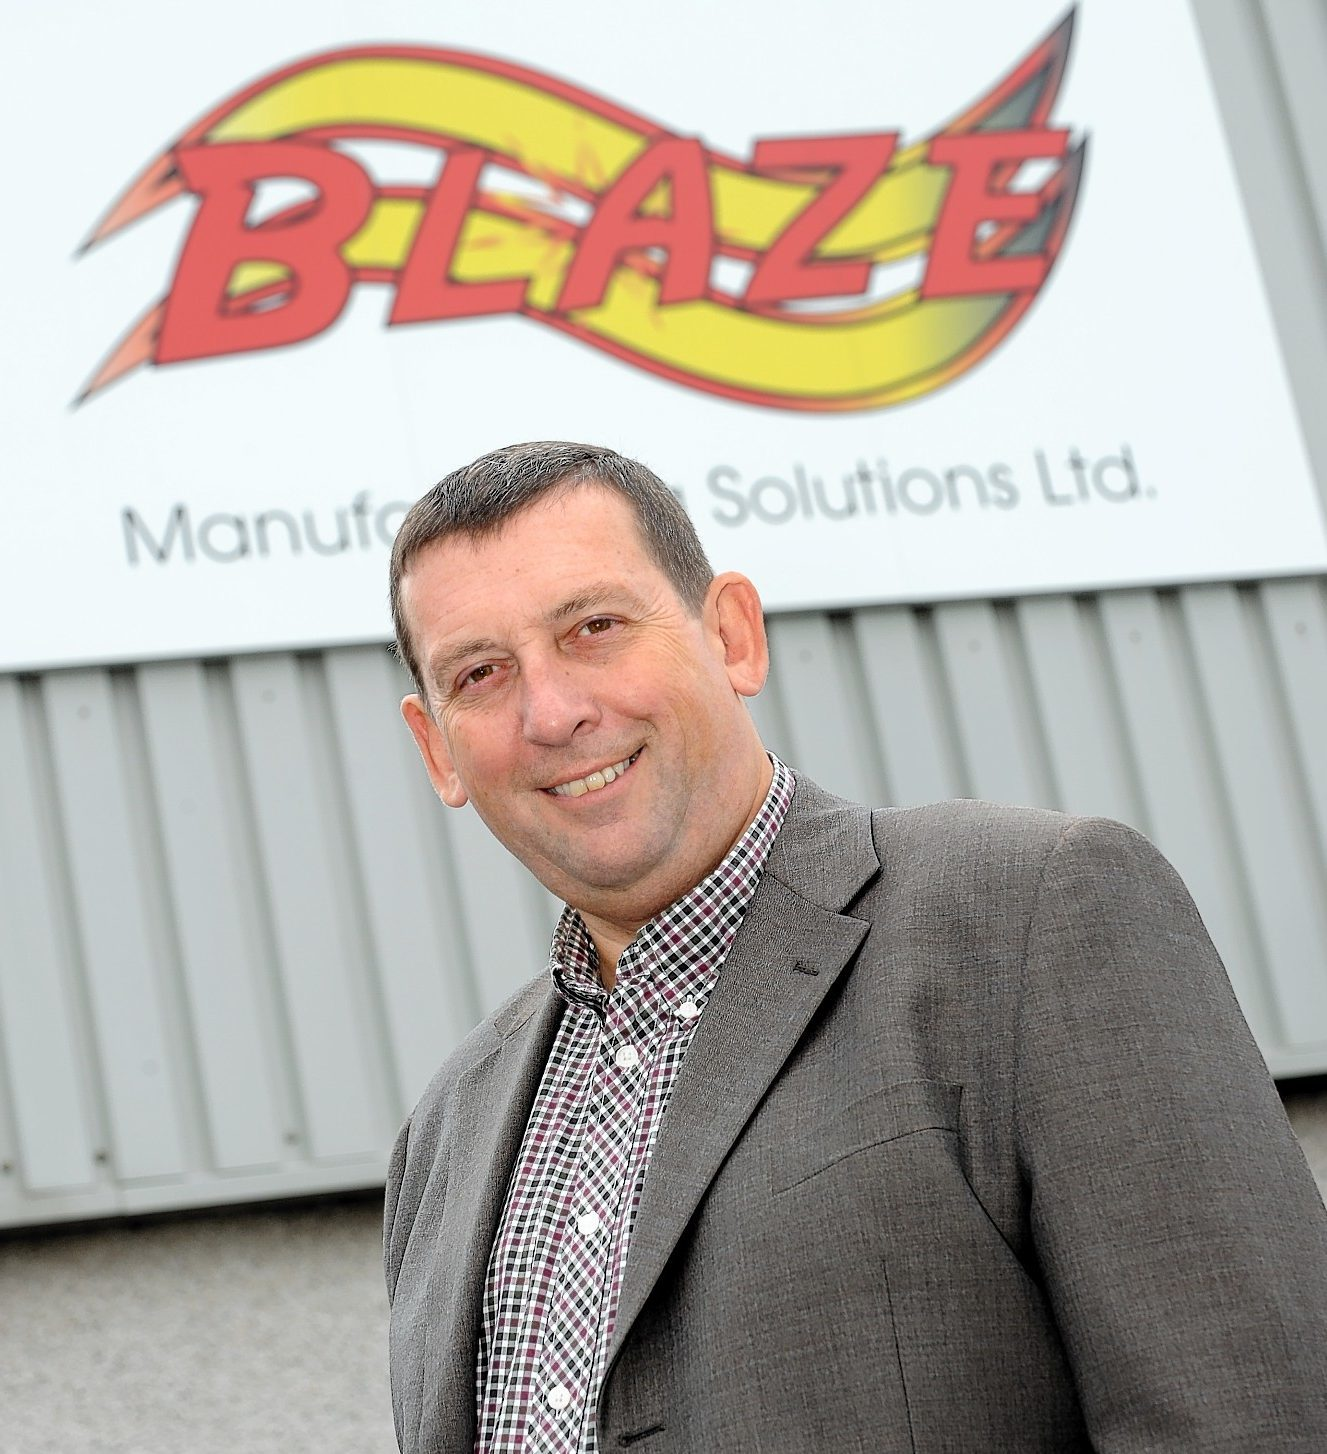 Blaze Manufacturing managing director, Howard Johnson.